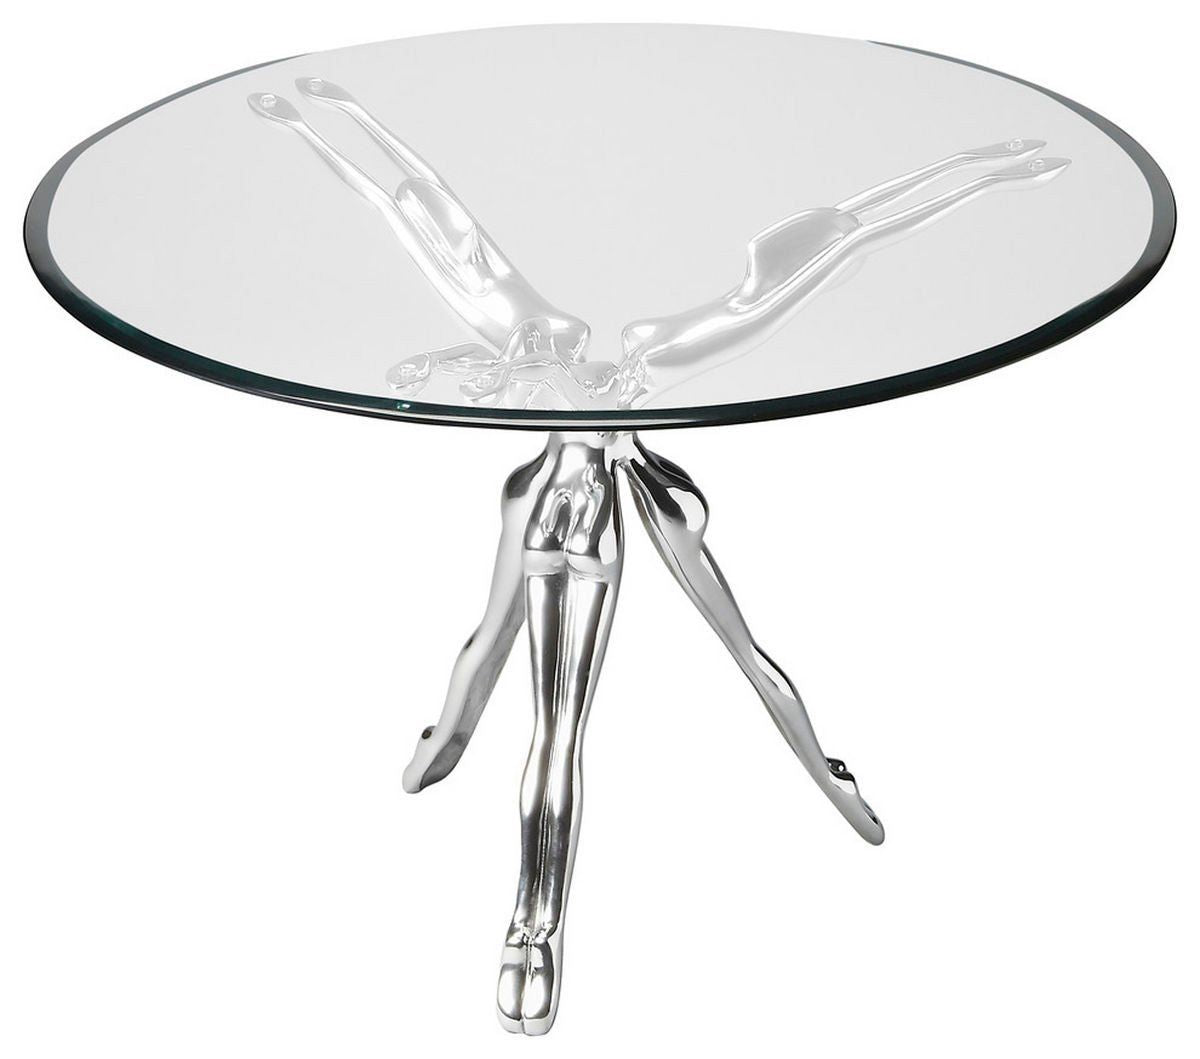 Buy Butler Furniture But 2599025 Blissful Modern Round Accent Table Silver At Contemporary Furniture Warehouse